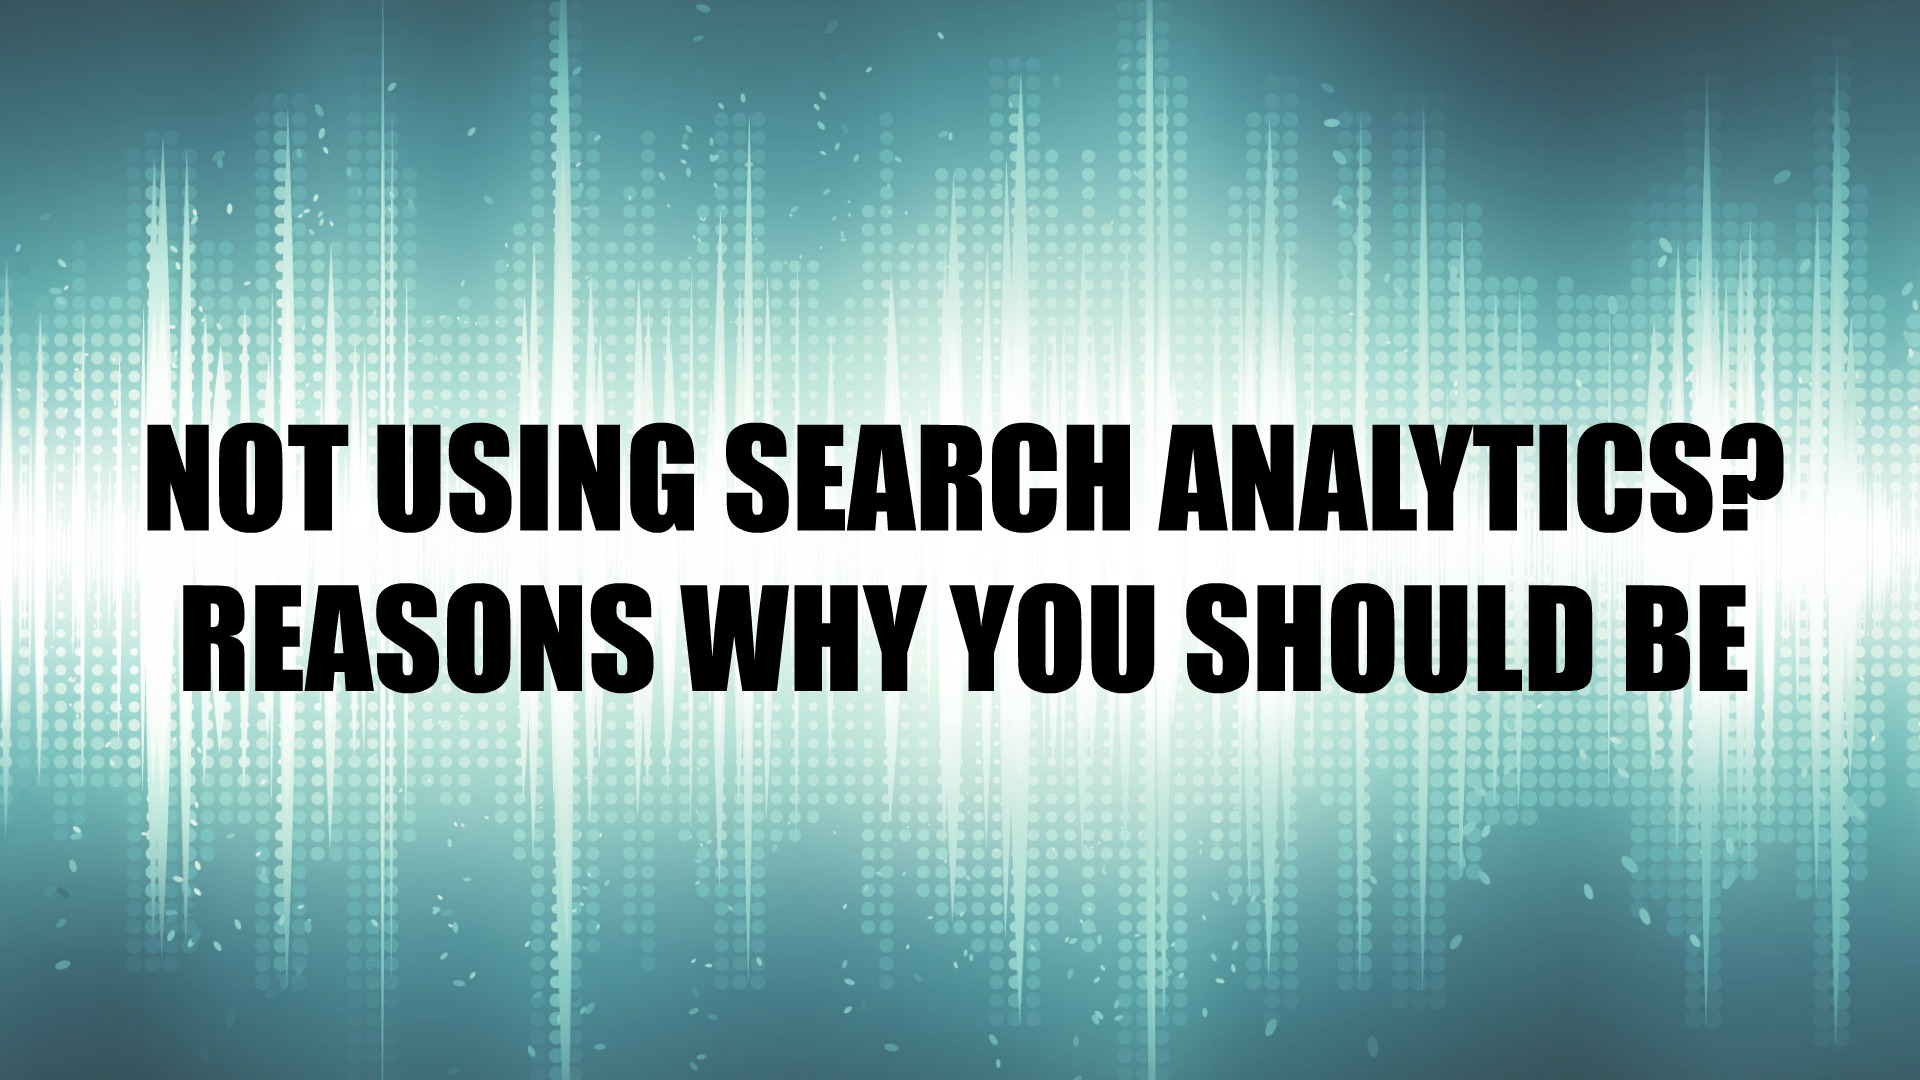 NOT USING SEARCH ANALYTICS? REASONS WHY YOU SHOULD BE